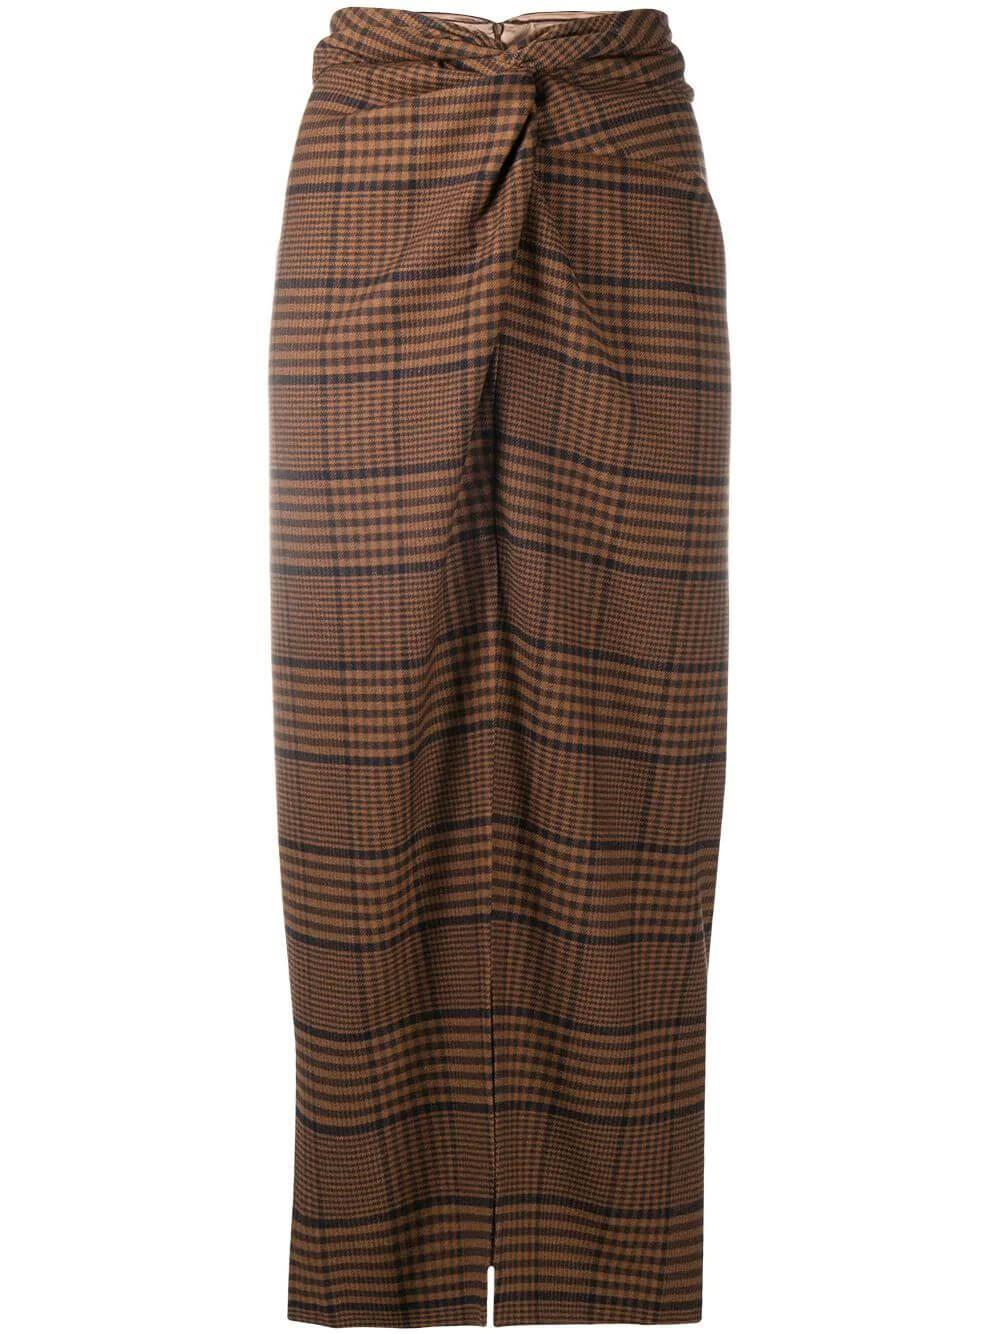 Samara Plaid Skirt